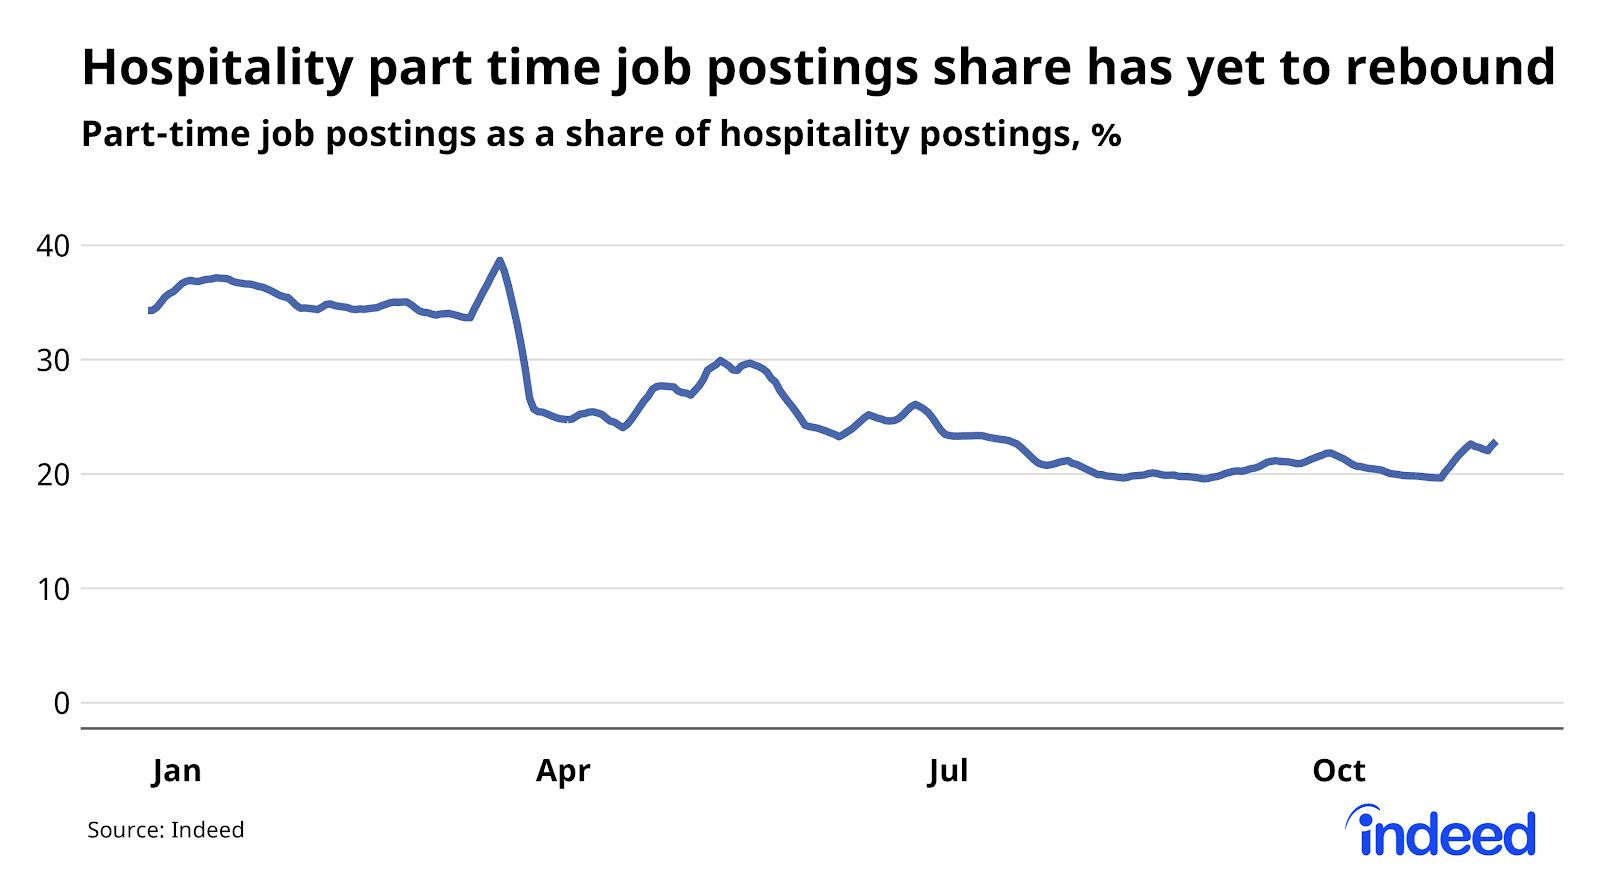 line graph showing part time job postings share has yet to rebound above pre-pandemic levels